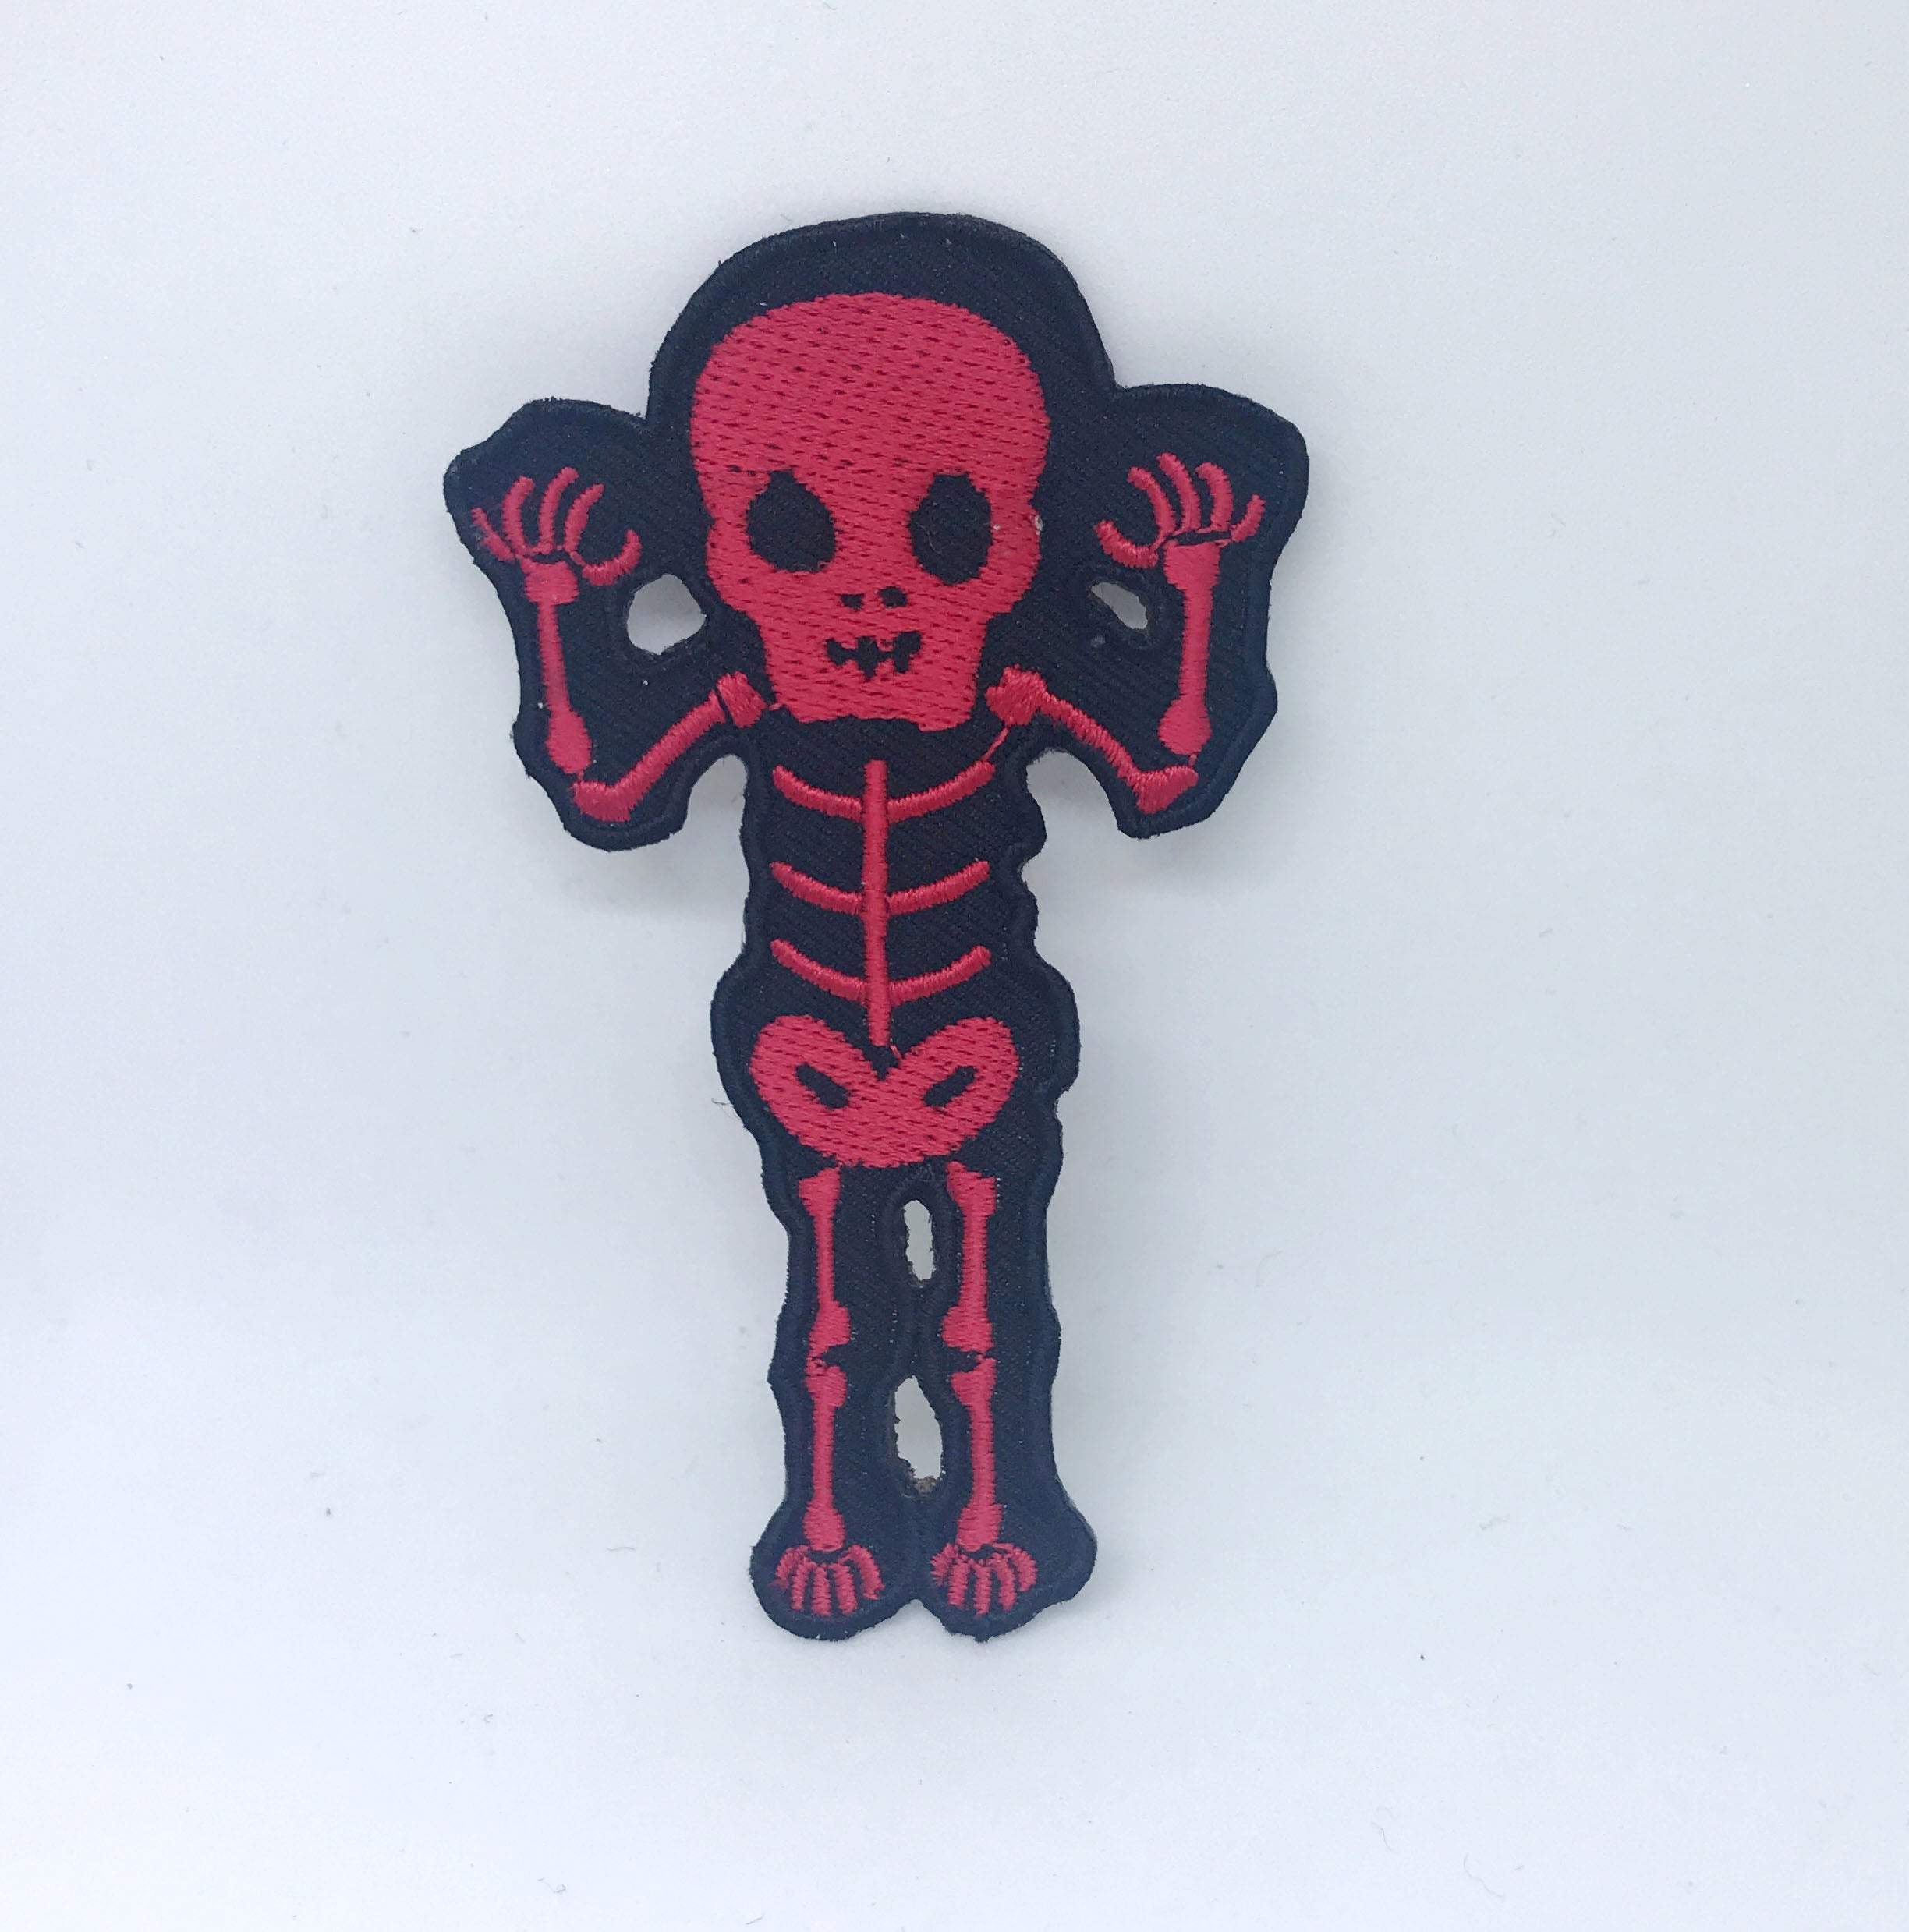 CUTE Waving Skeleton Biker Rock Goth Emo BOW Iron On Embroidered Patch - Red